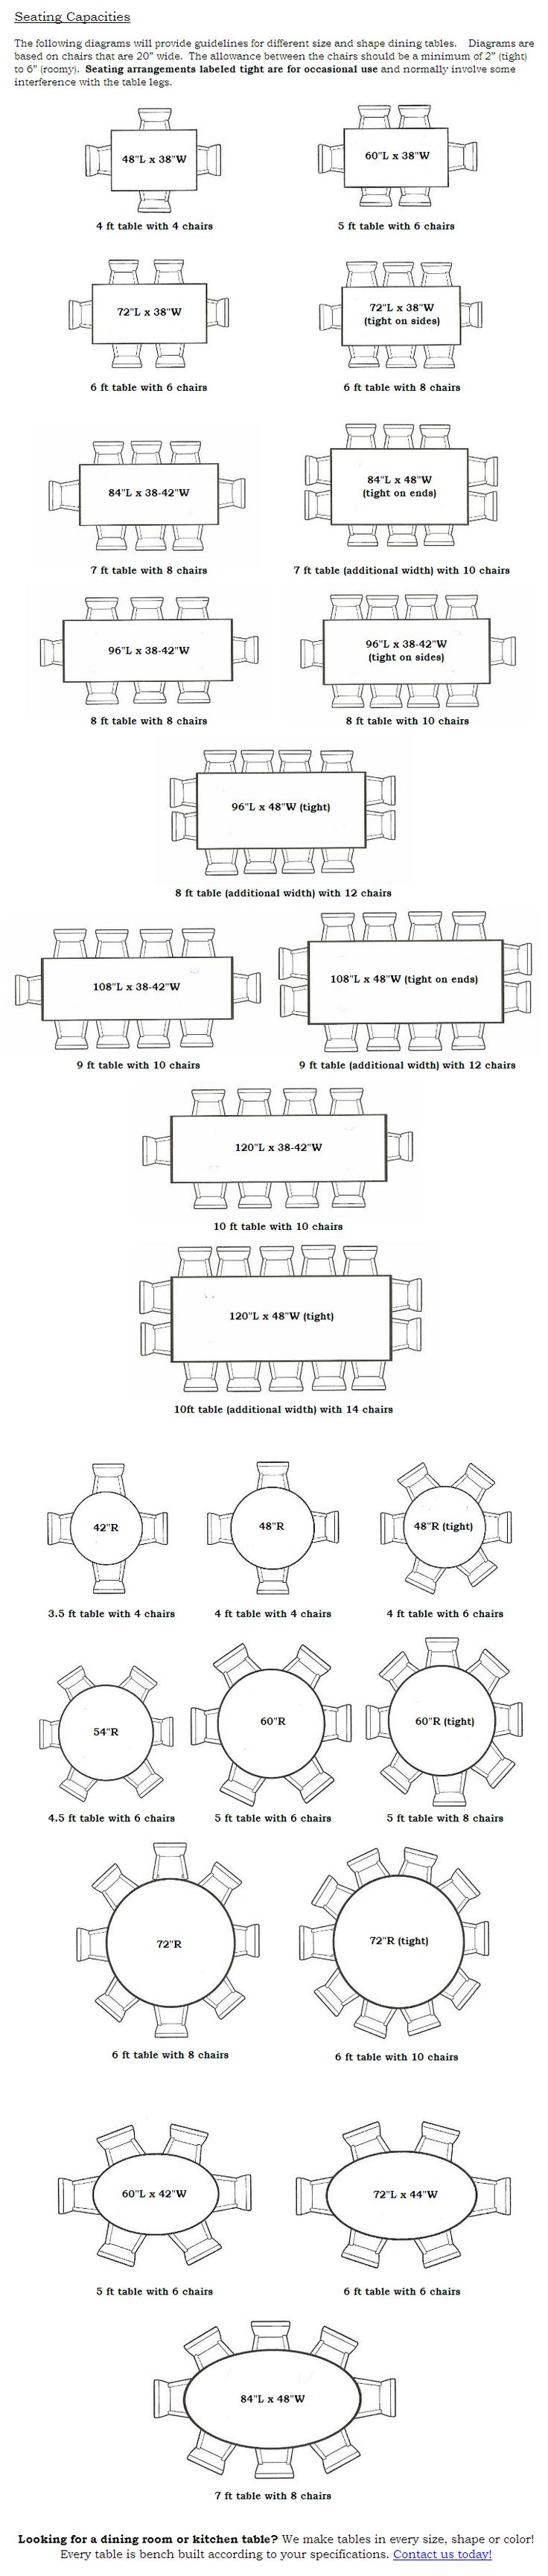 Dining Table seating capacities chart by size and shape: #seatingchart #tablesize #weddingplanning